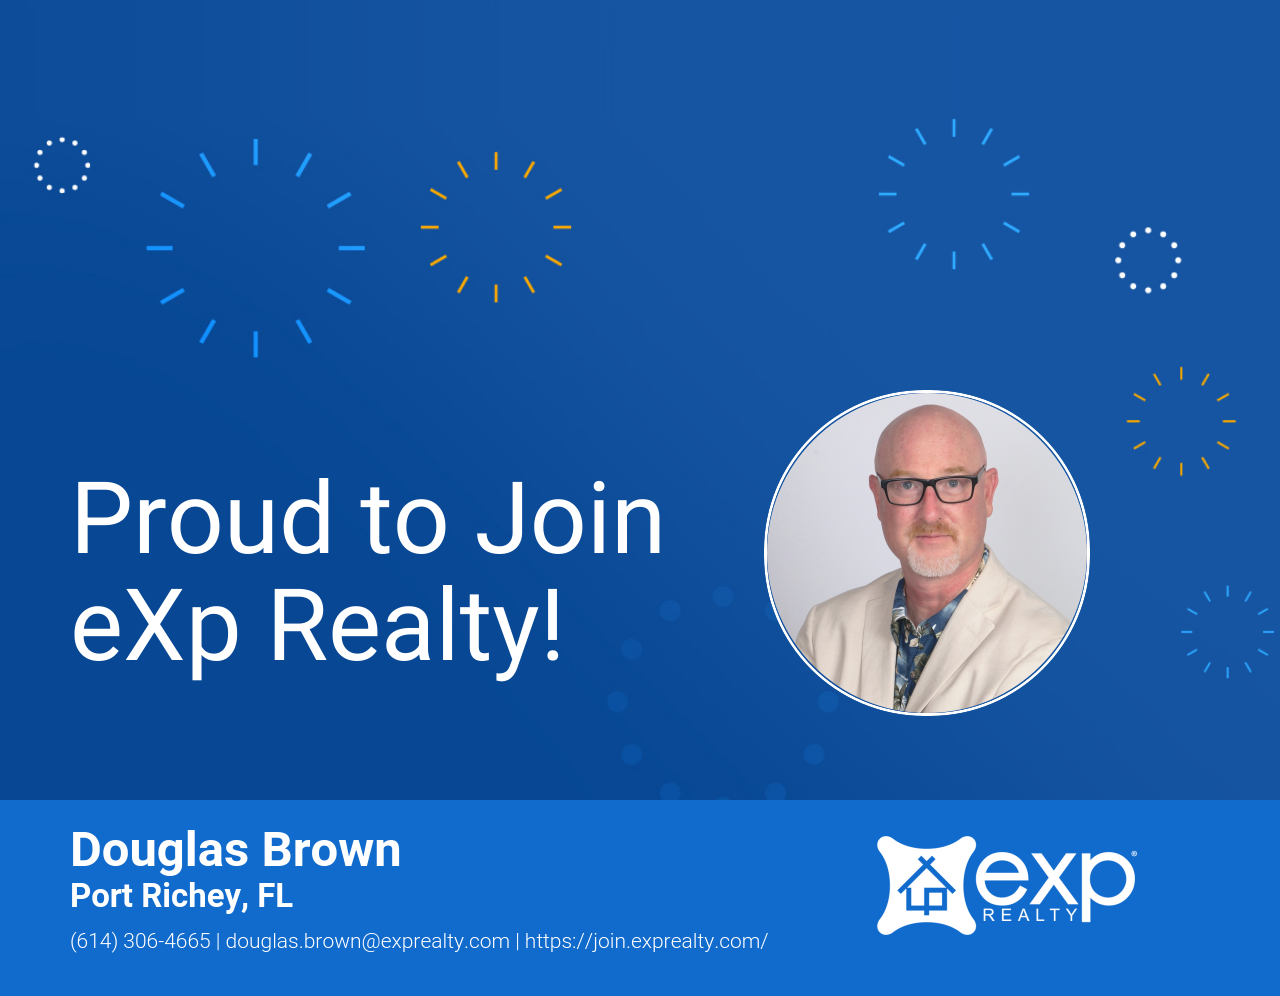 Douglas Brown Joined eXp Realty!